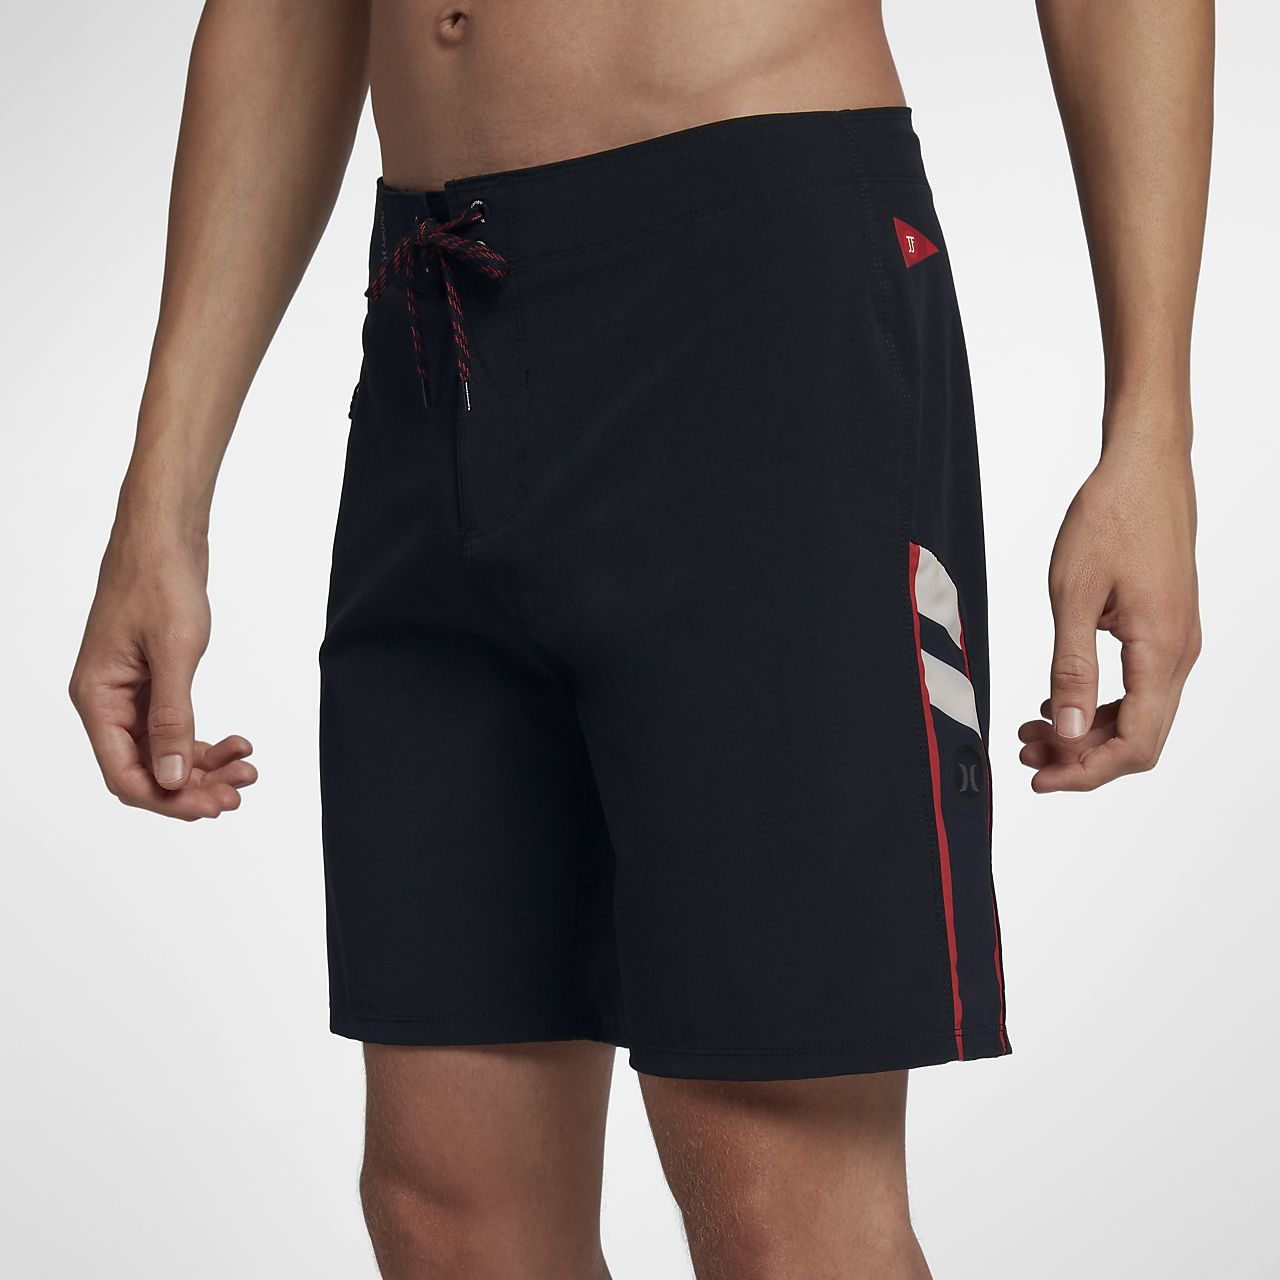 "Hurley Phantom JJF 5 Men's 18"" Board Shorts"